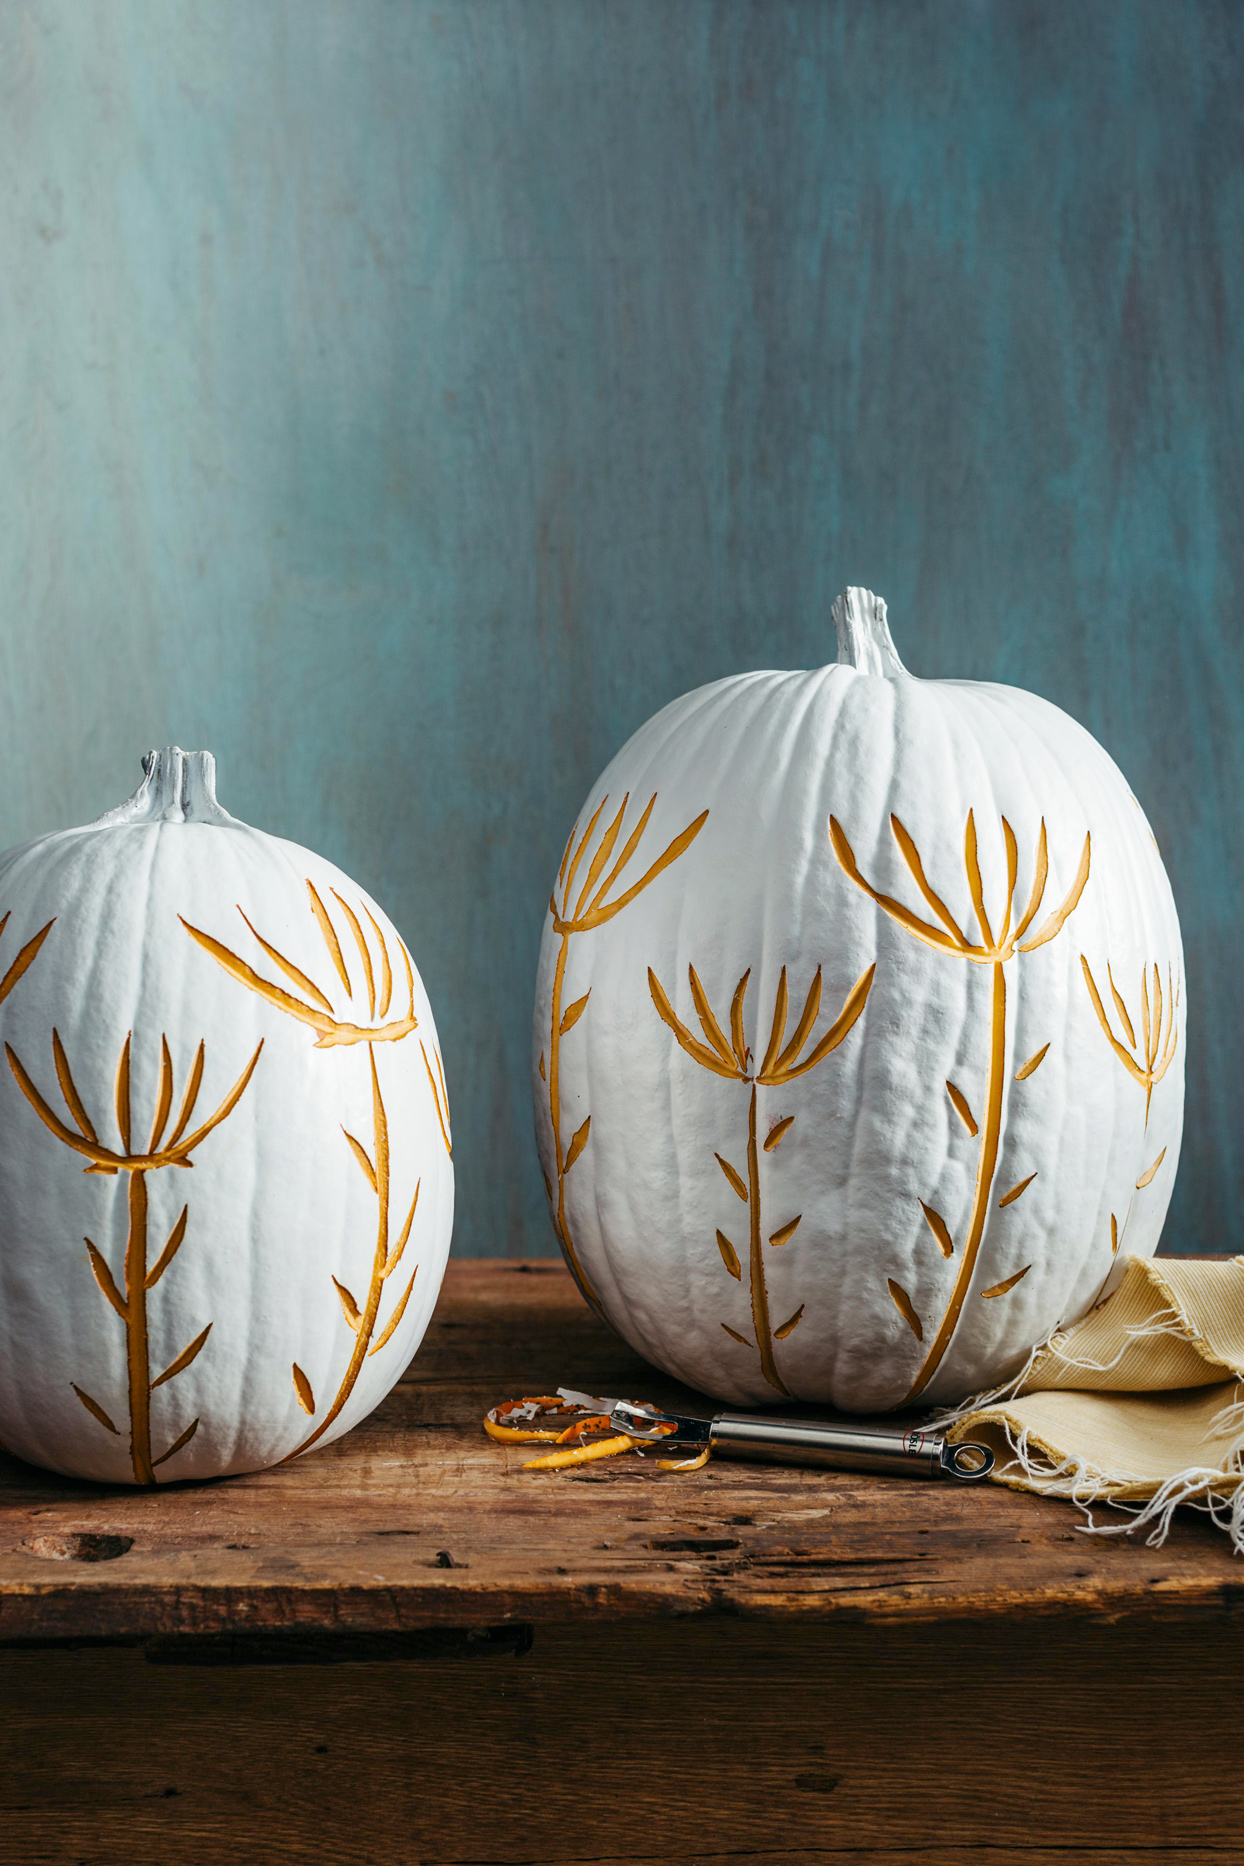 Etched White Pumpkins